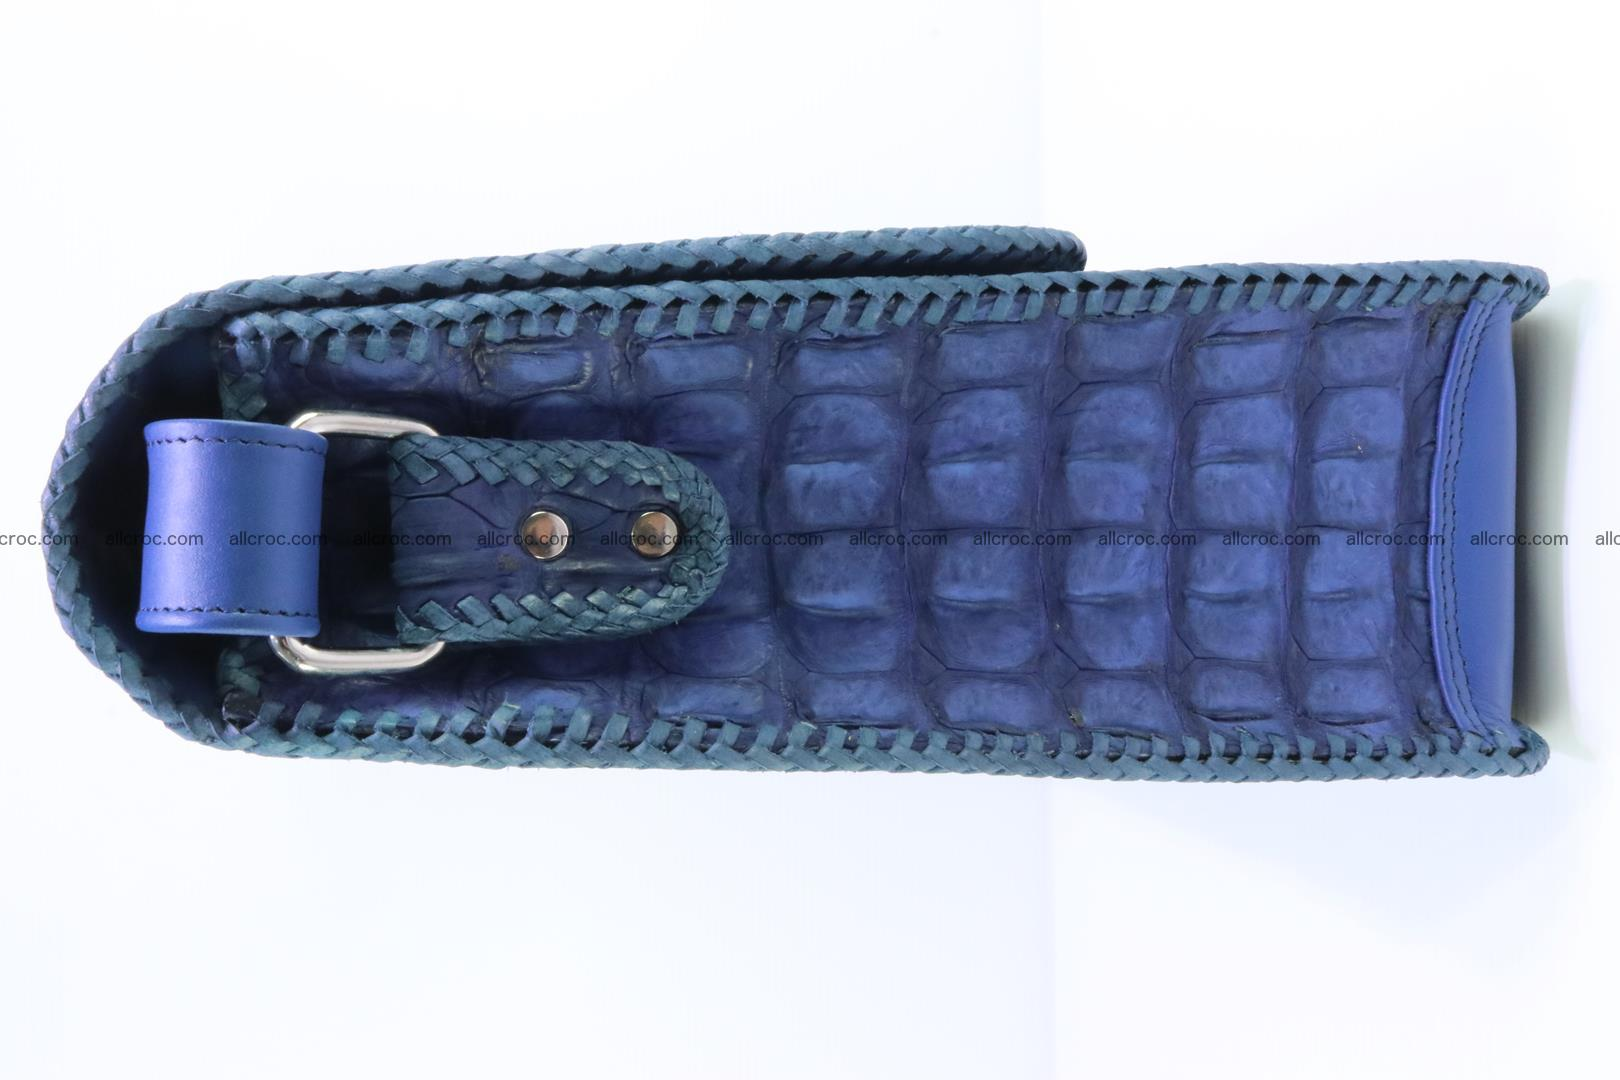 Сrocodile skin shoulder bag with braided edges 140 Foto 4